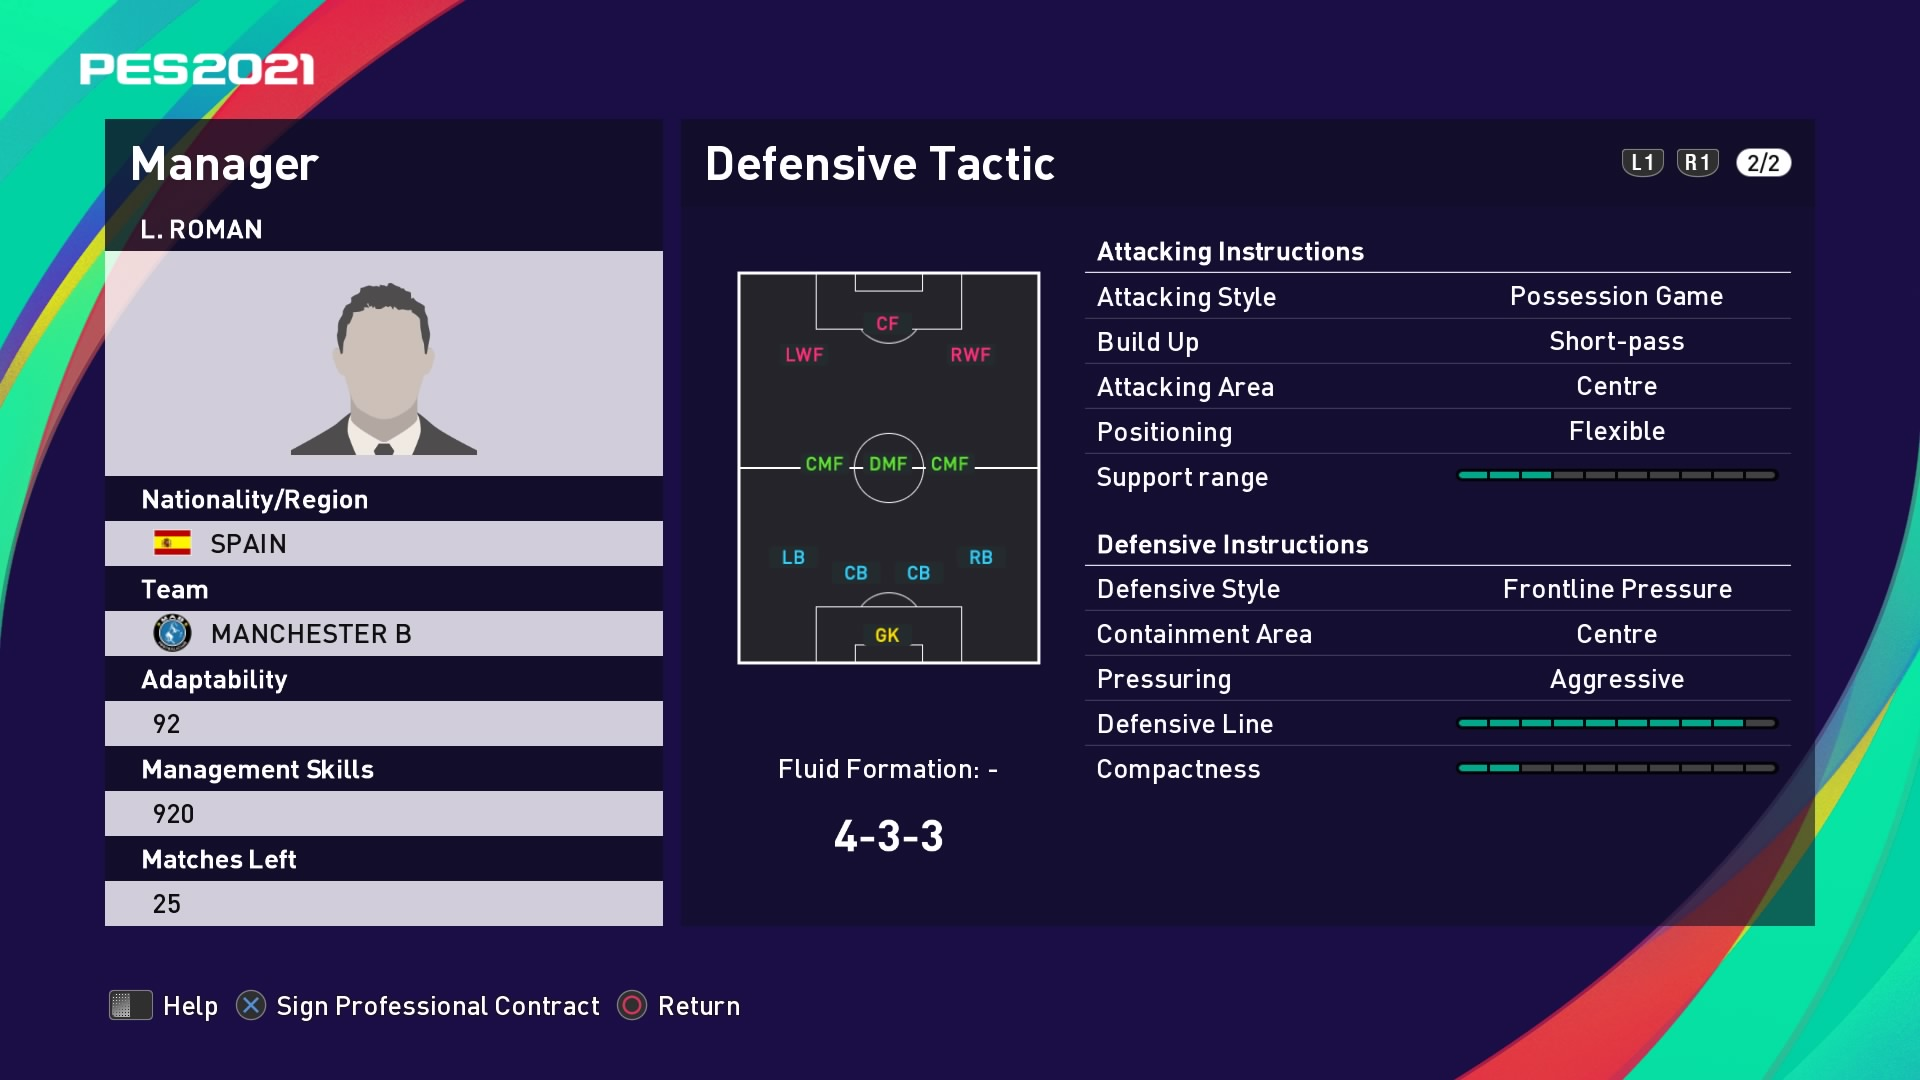 L. Roman (2) (Pep Guardiola) Defensive Tactic in PES 2021 myClub